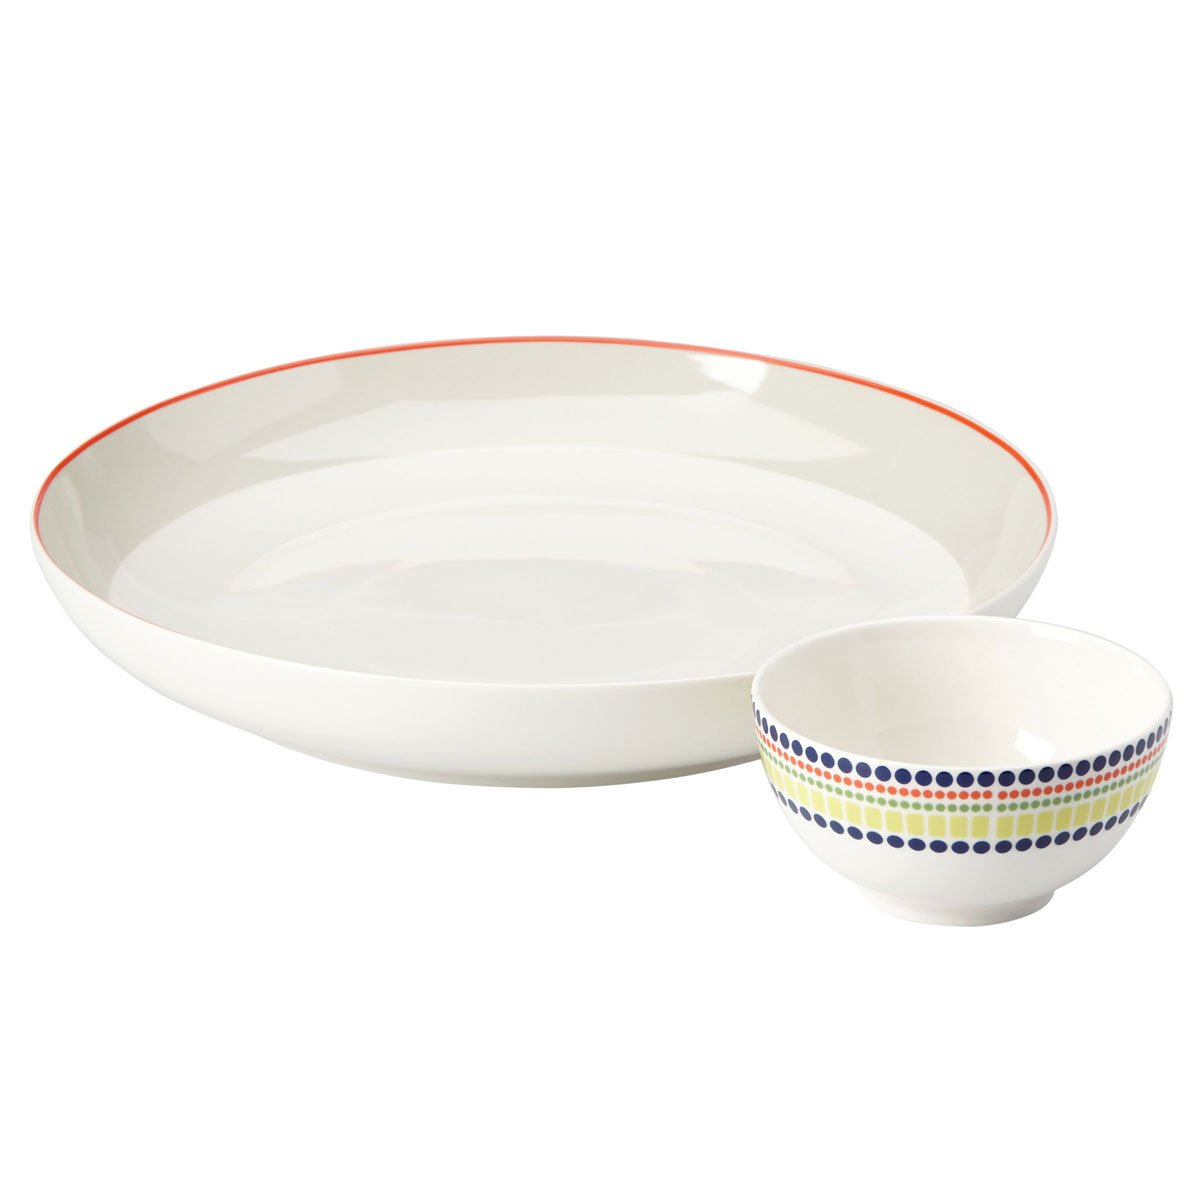 kate spade new york Hopscotch Drive Chip and Dip Serving Set by Kate Spade New York (Image #1)